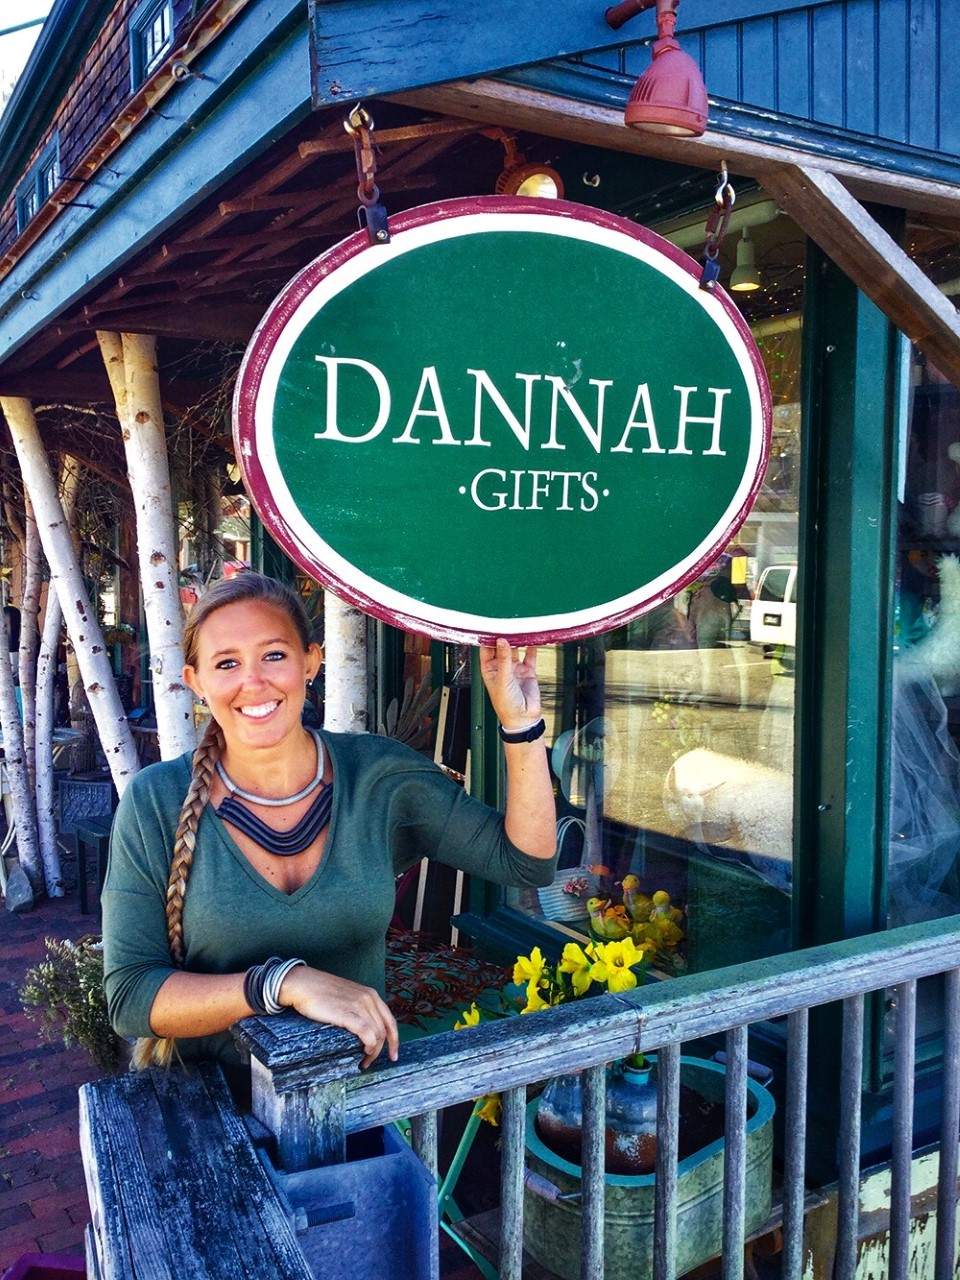 Laura McCullough Speaks of Dannah in Kennebunkport